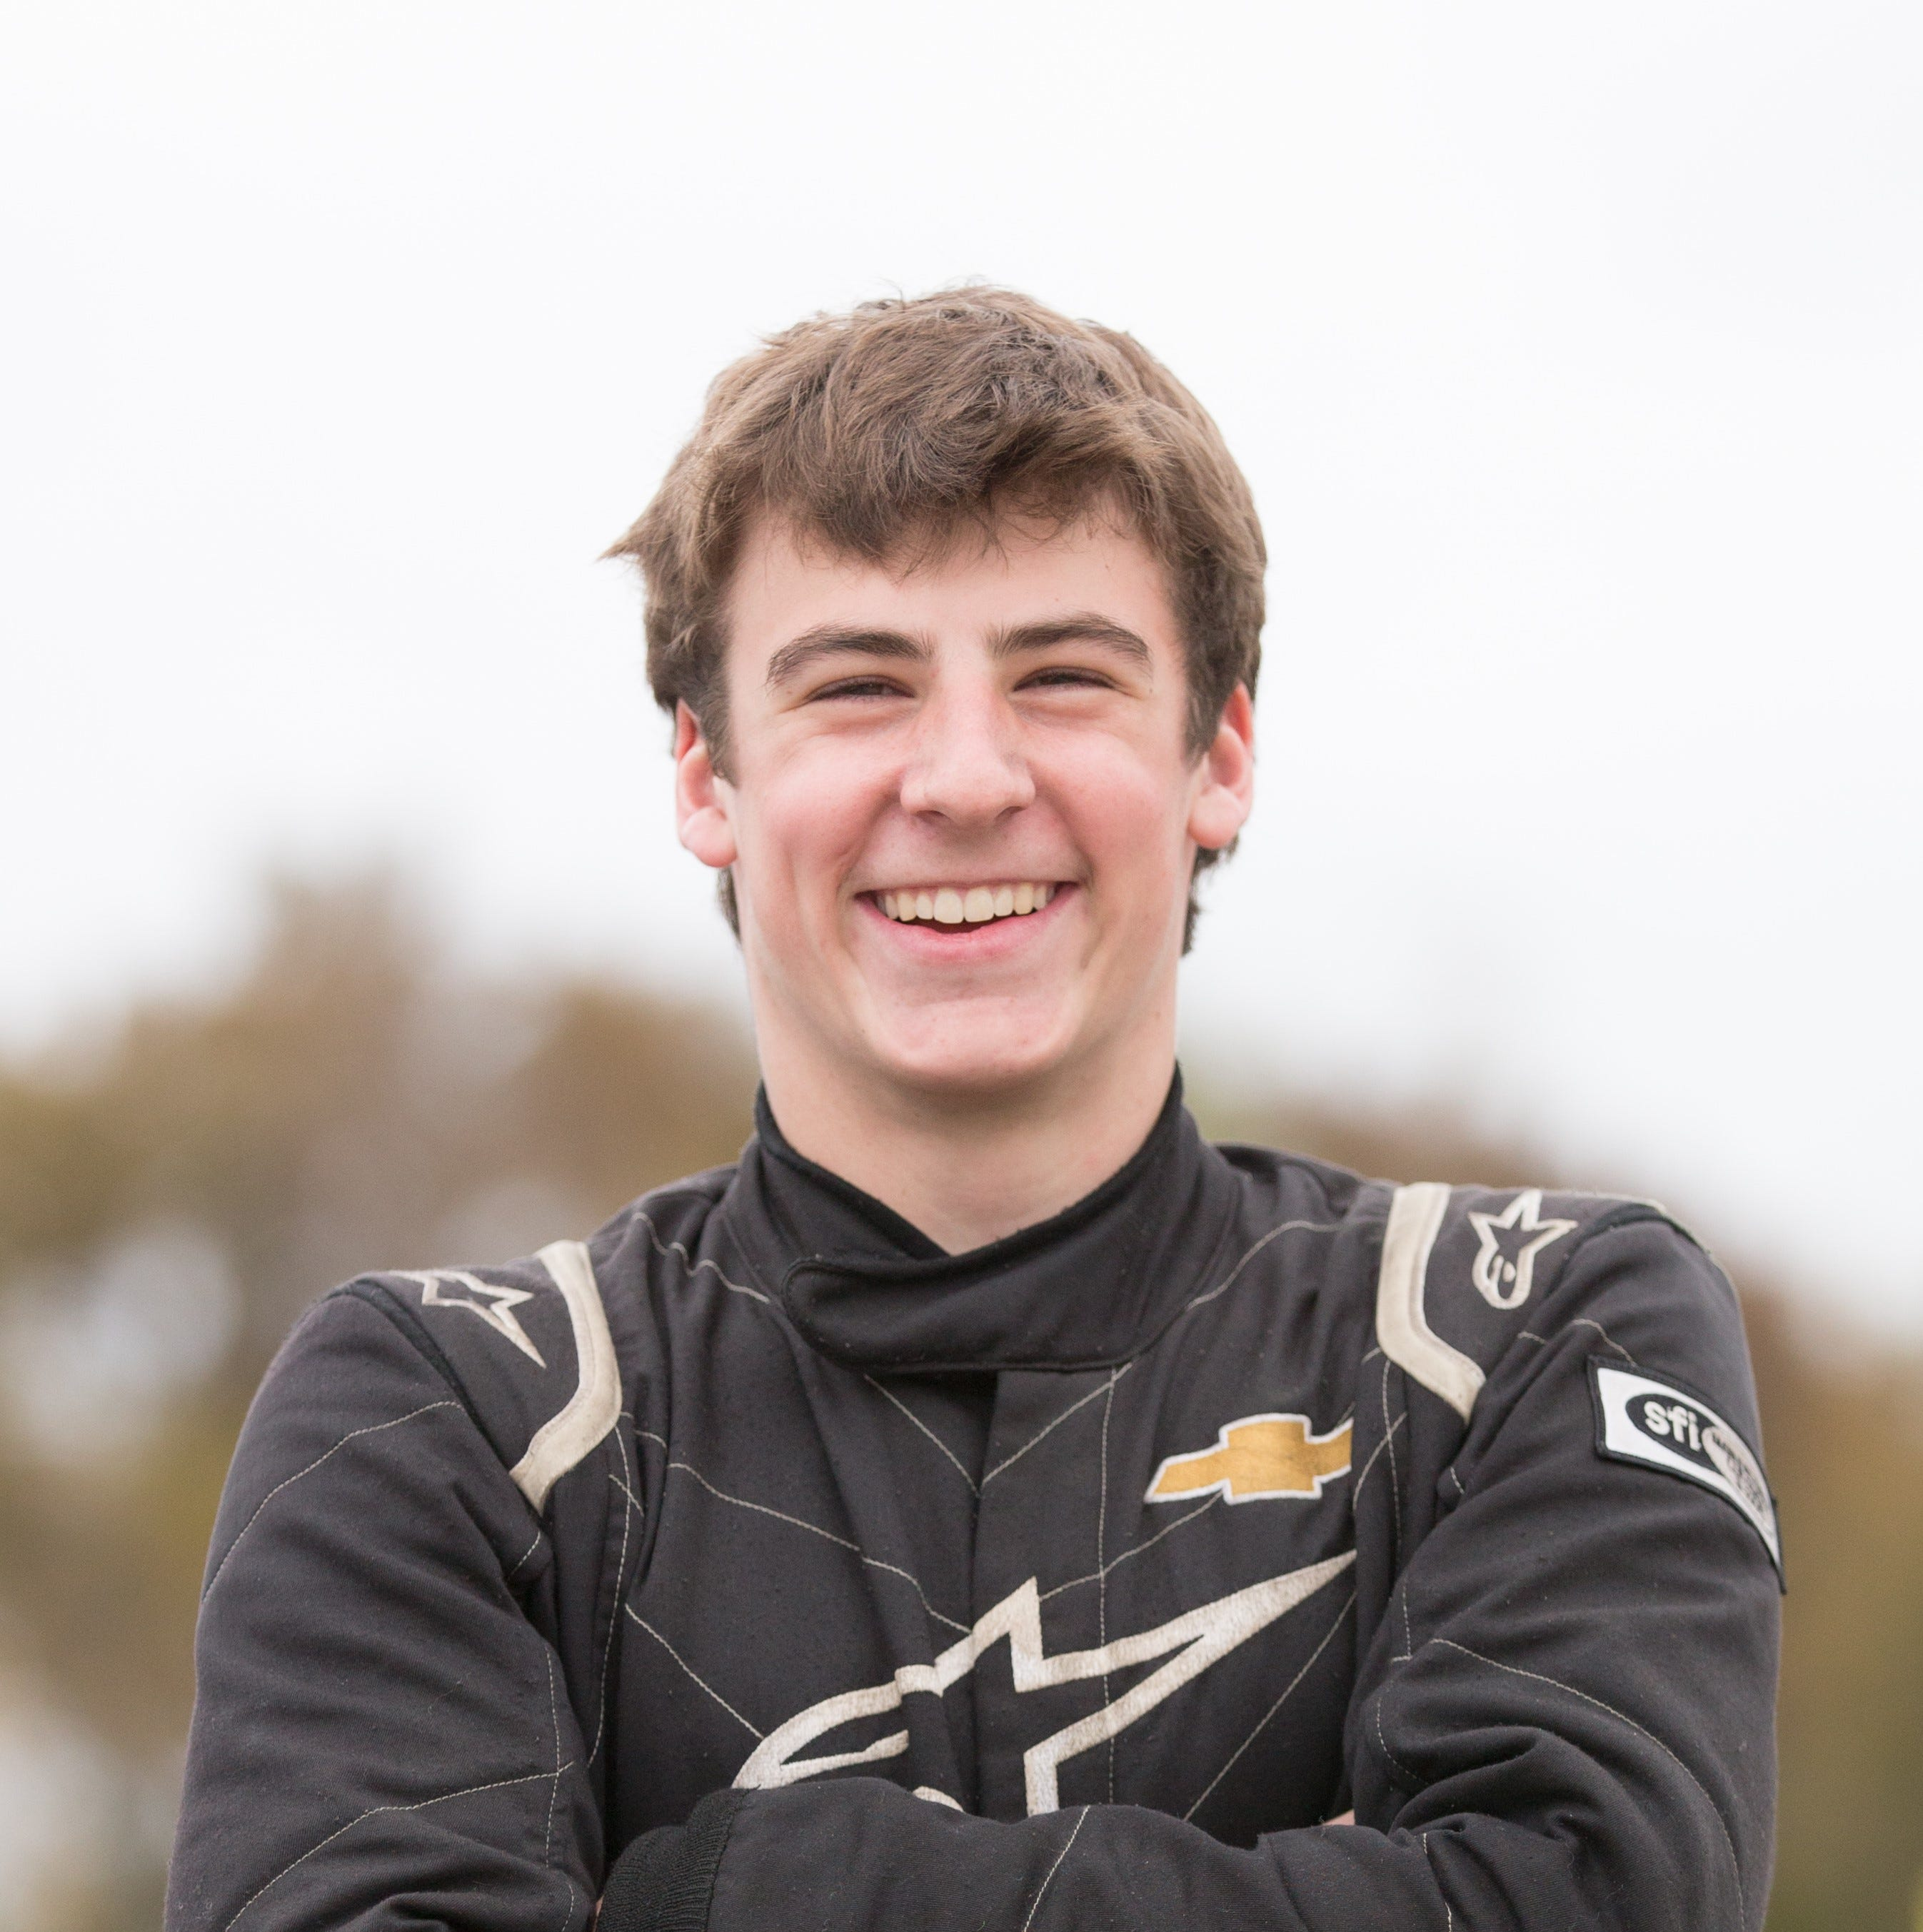 He's a stock car champion at 14. Now Luke Fenhaus drives toward the $54,000 Kulwicki Cup